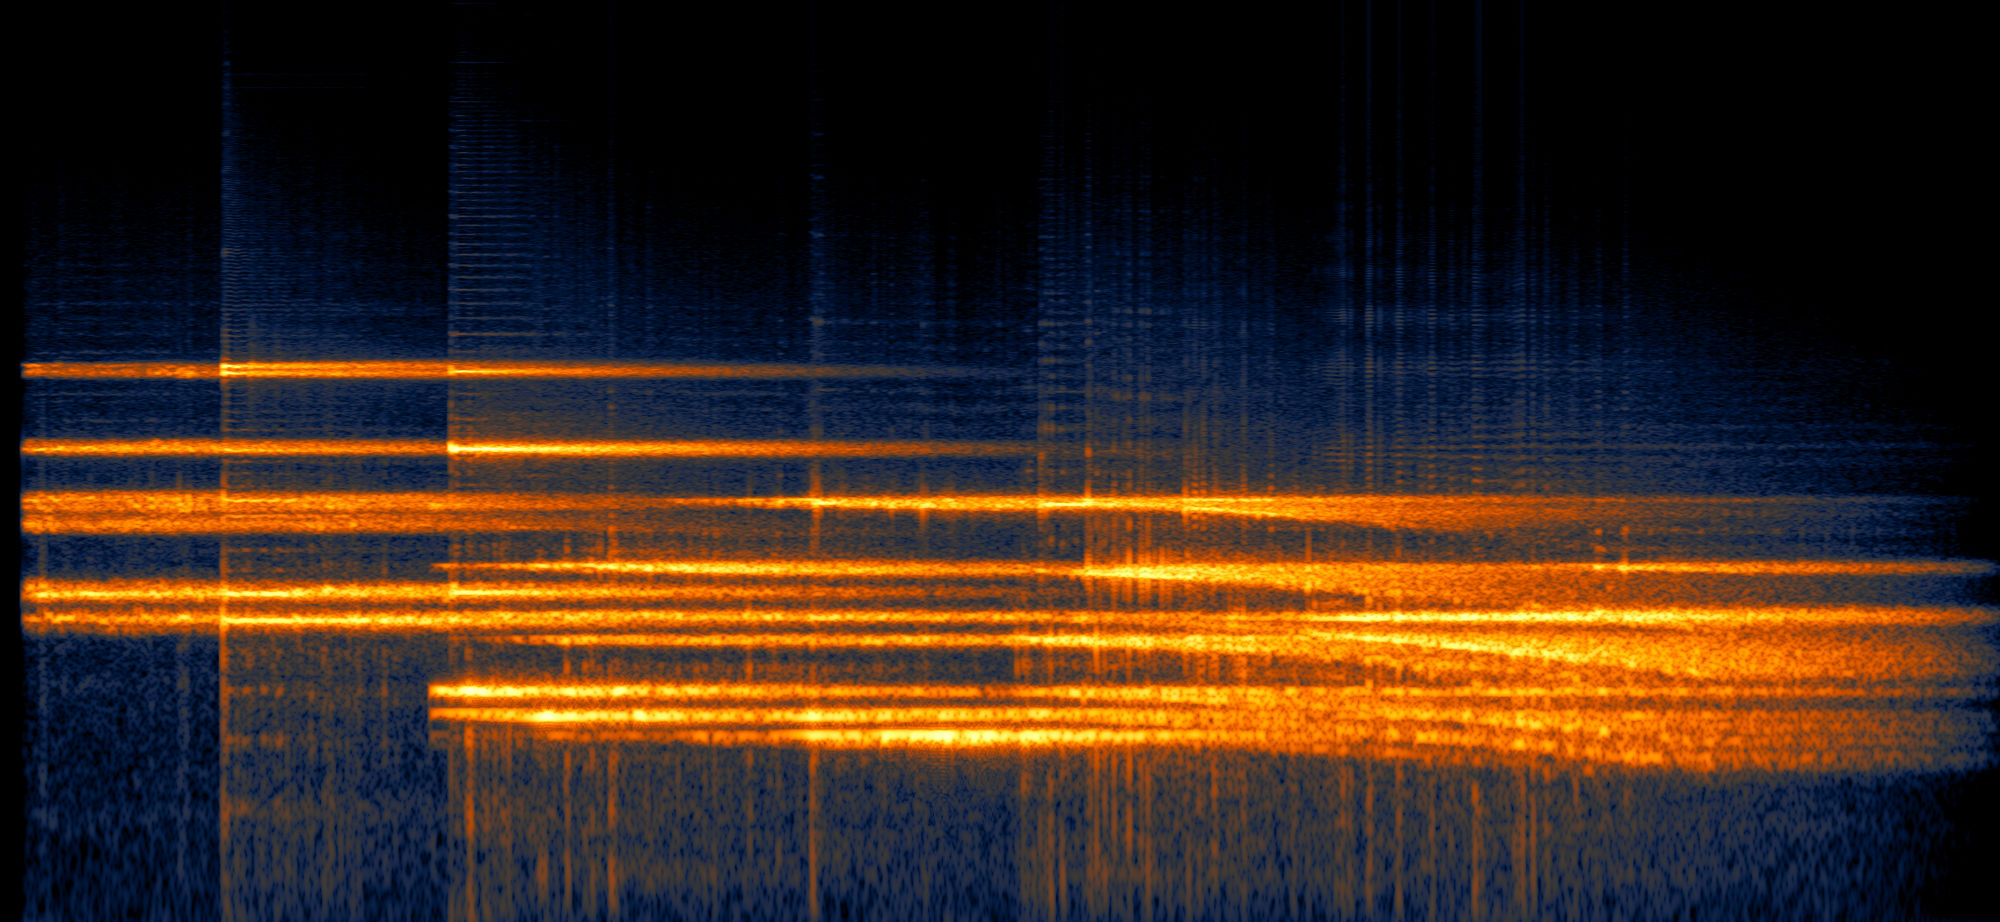 RX 7 spectrogram after some sound design